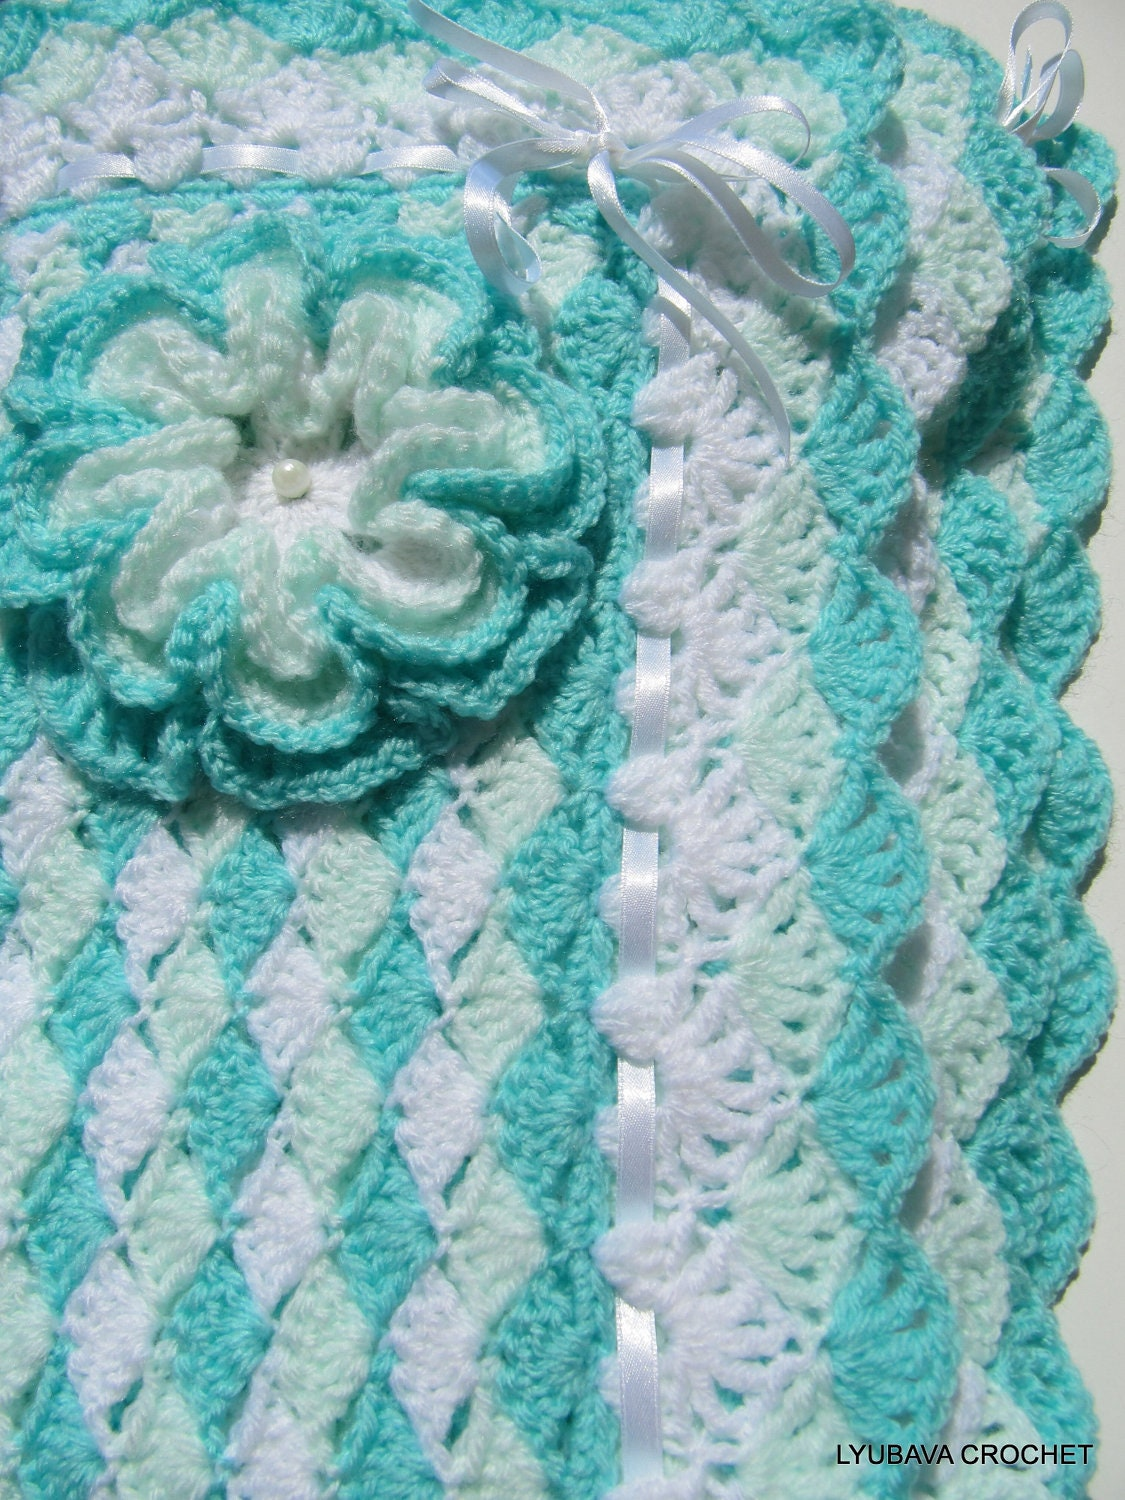 Crocheting Easy Baby Blanket : CROCHET PATTERN Baby Blanket Turquoise With by LyubavaCrochet